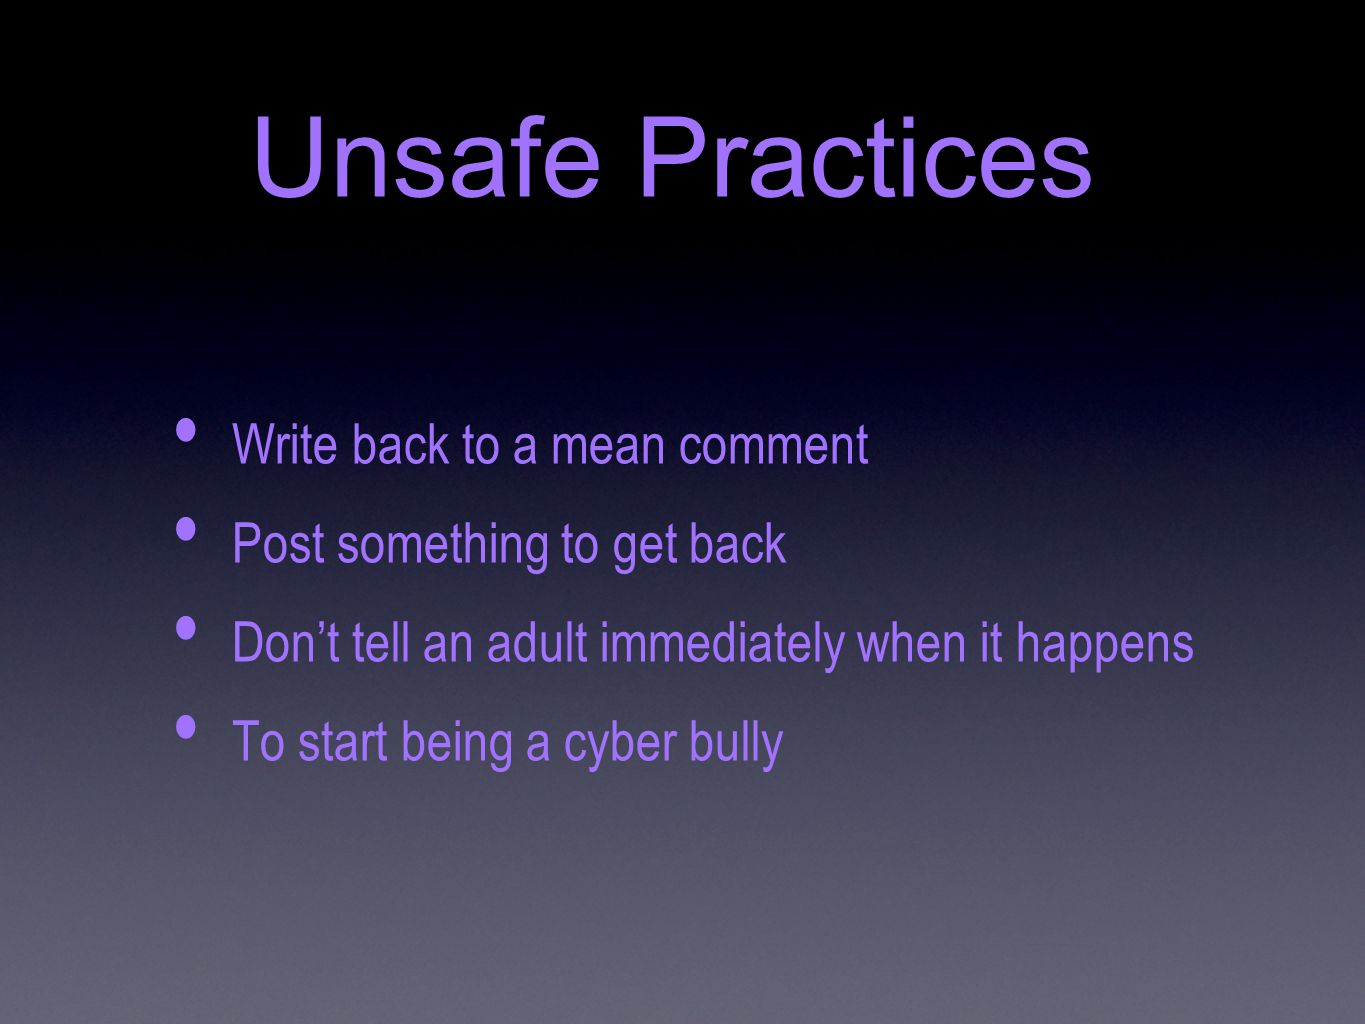 Unsafe Practices Write back to a mean comment Post something to get back Don't tell an adult immediately when it happens To start being a cyber bully